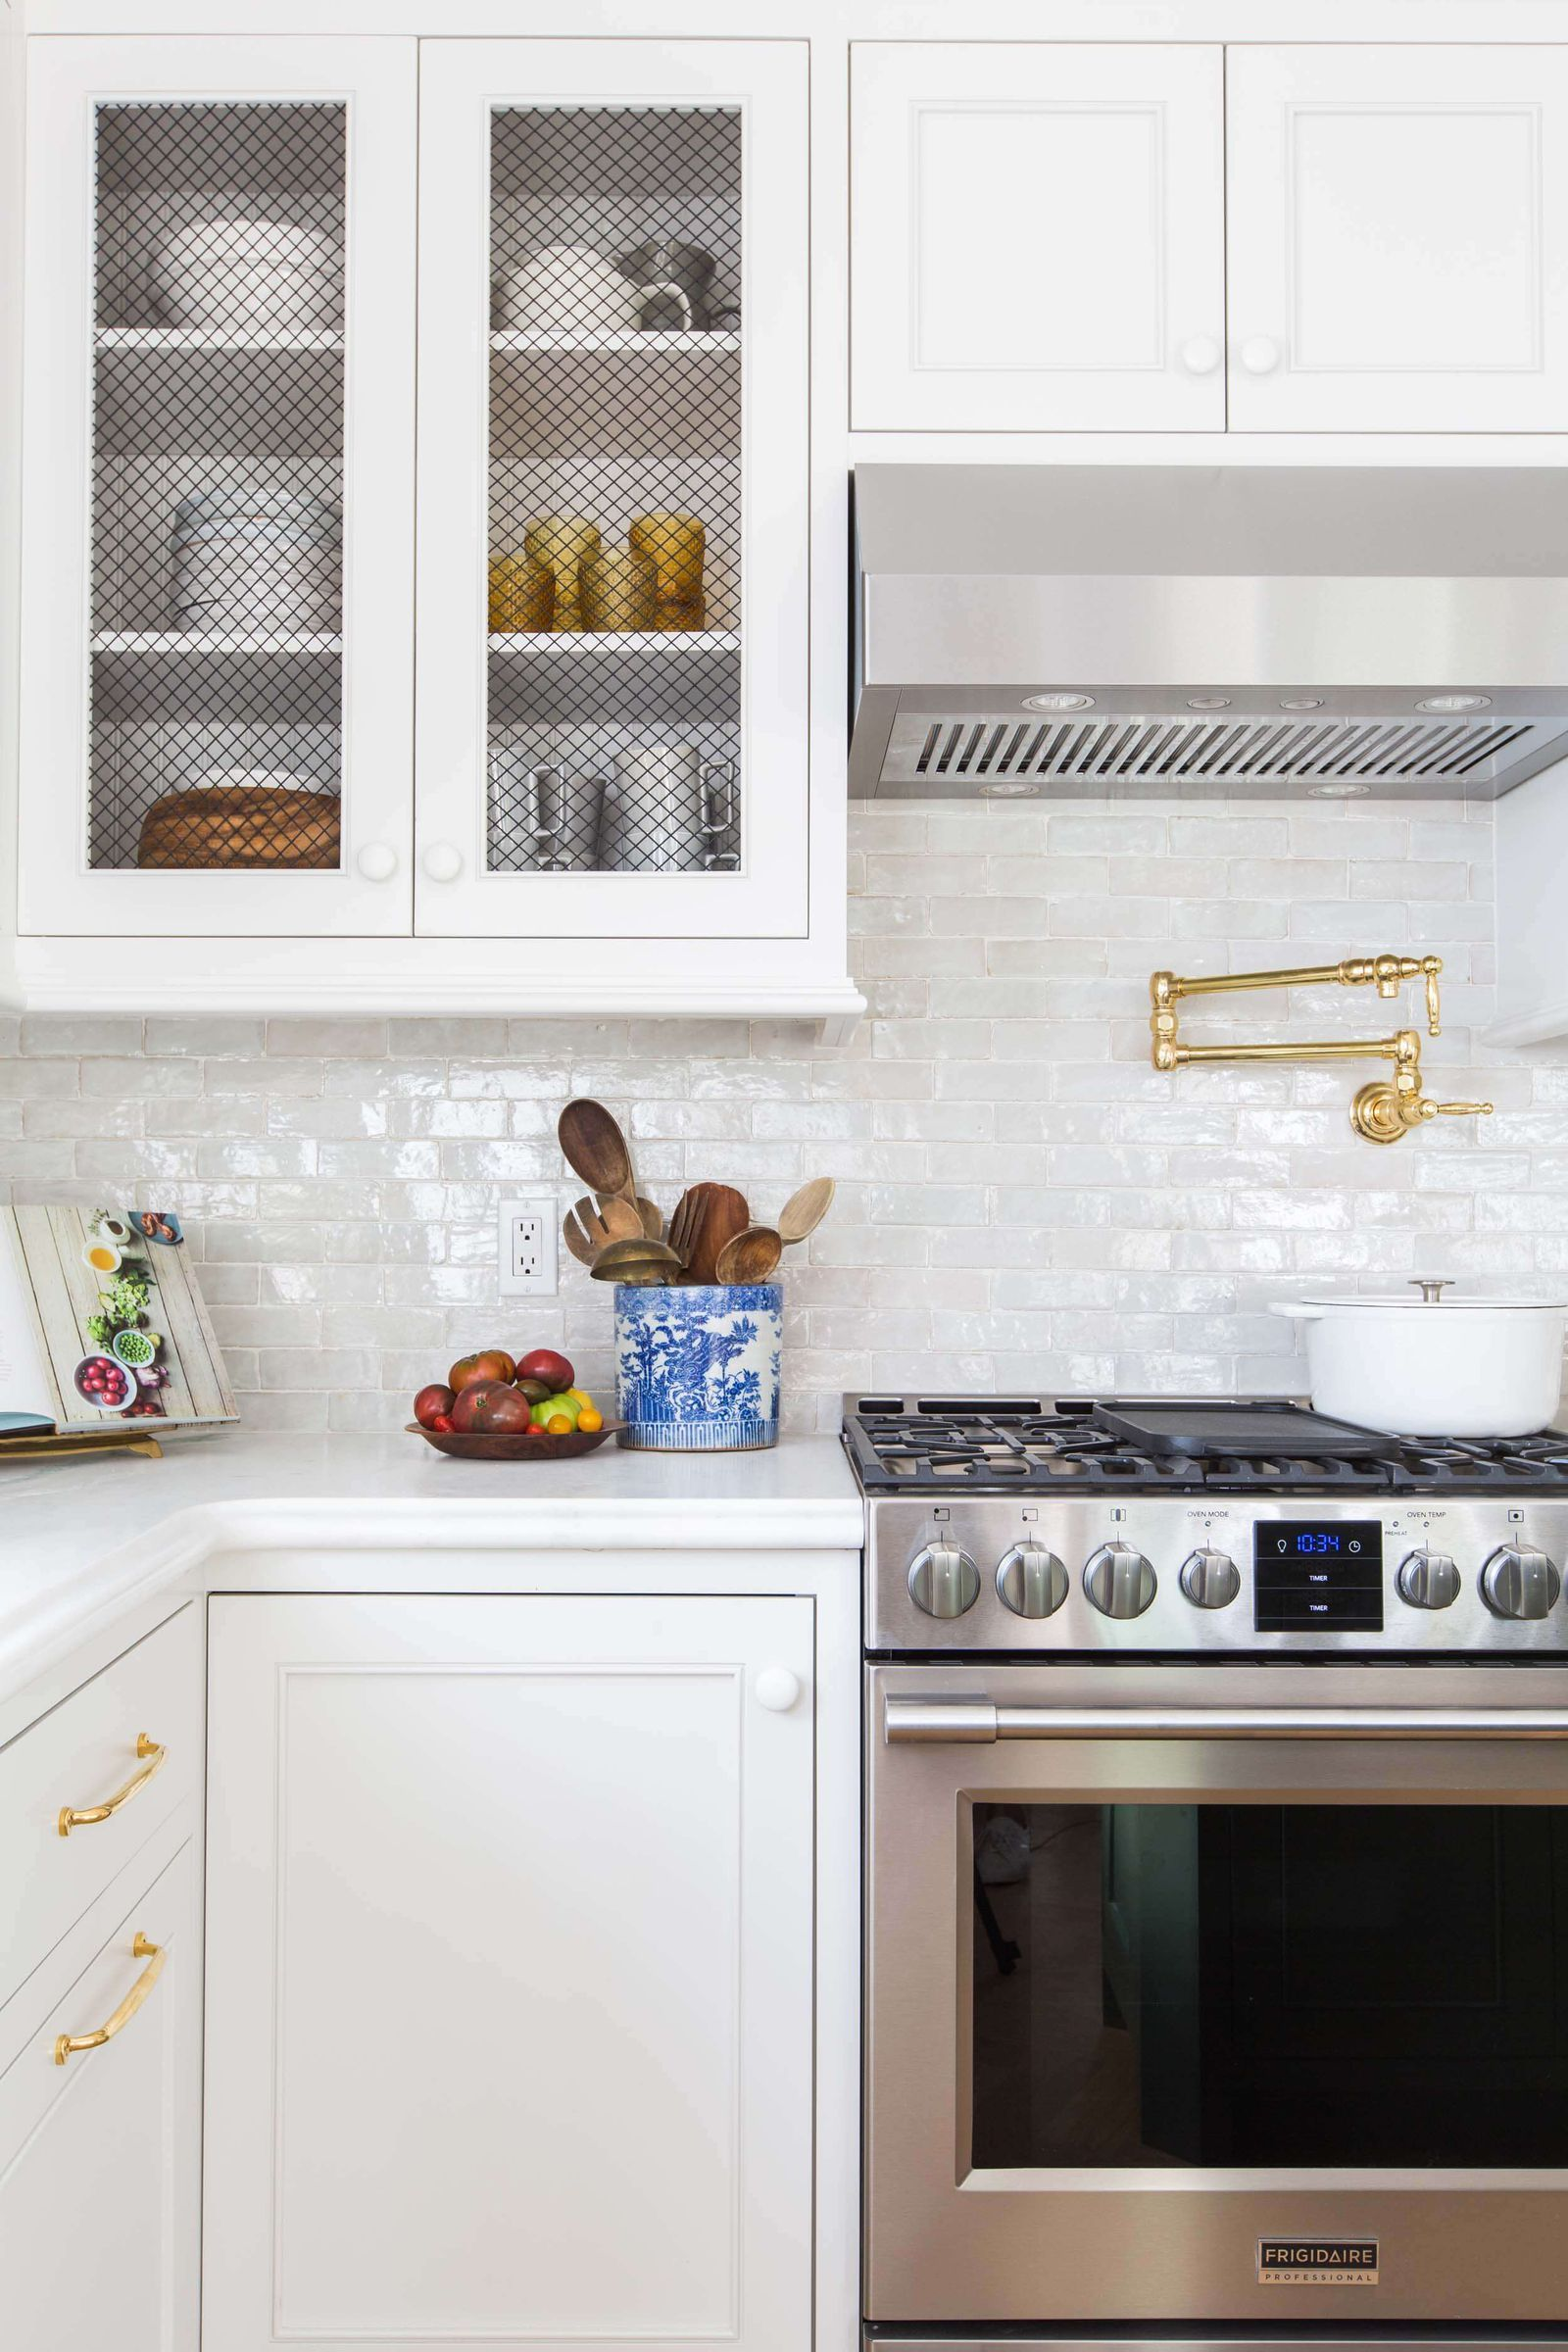 50 Chic Kitchen Backsplash Ideas That Will Transform The Entire Room With Images English Country Kitchens Kitchen Tiles Design Kitchen Backsplash